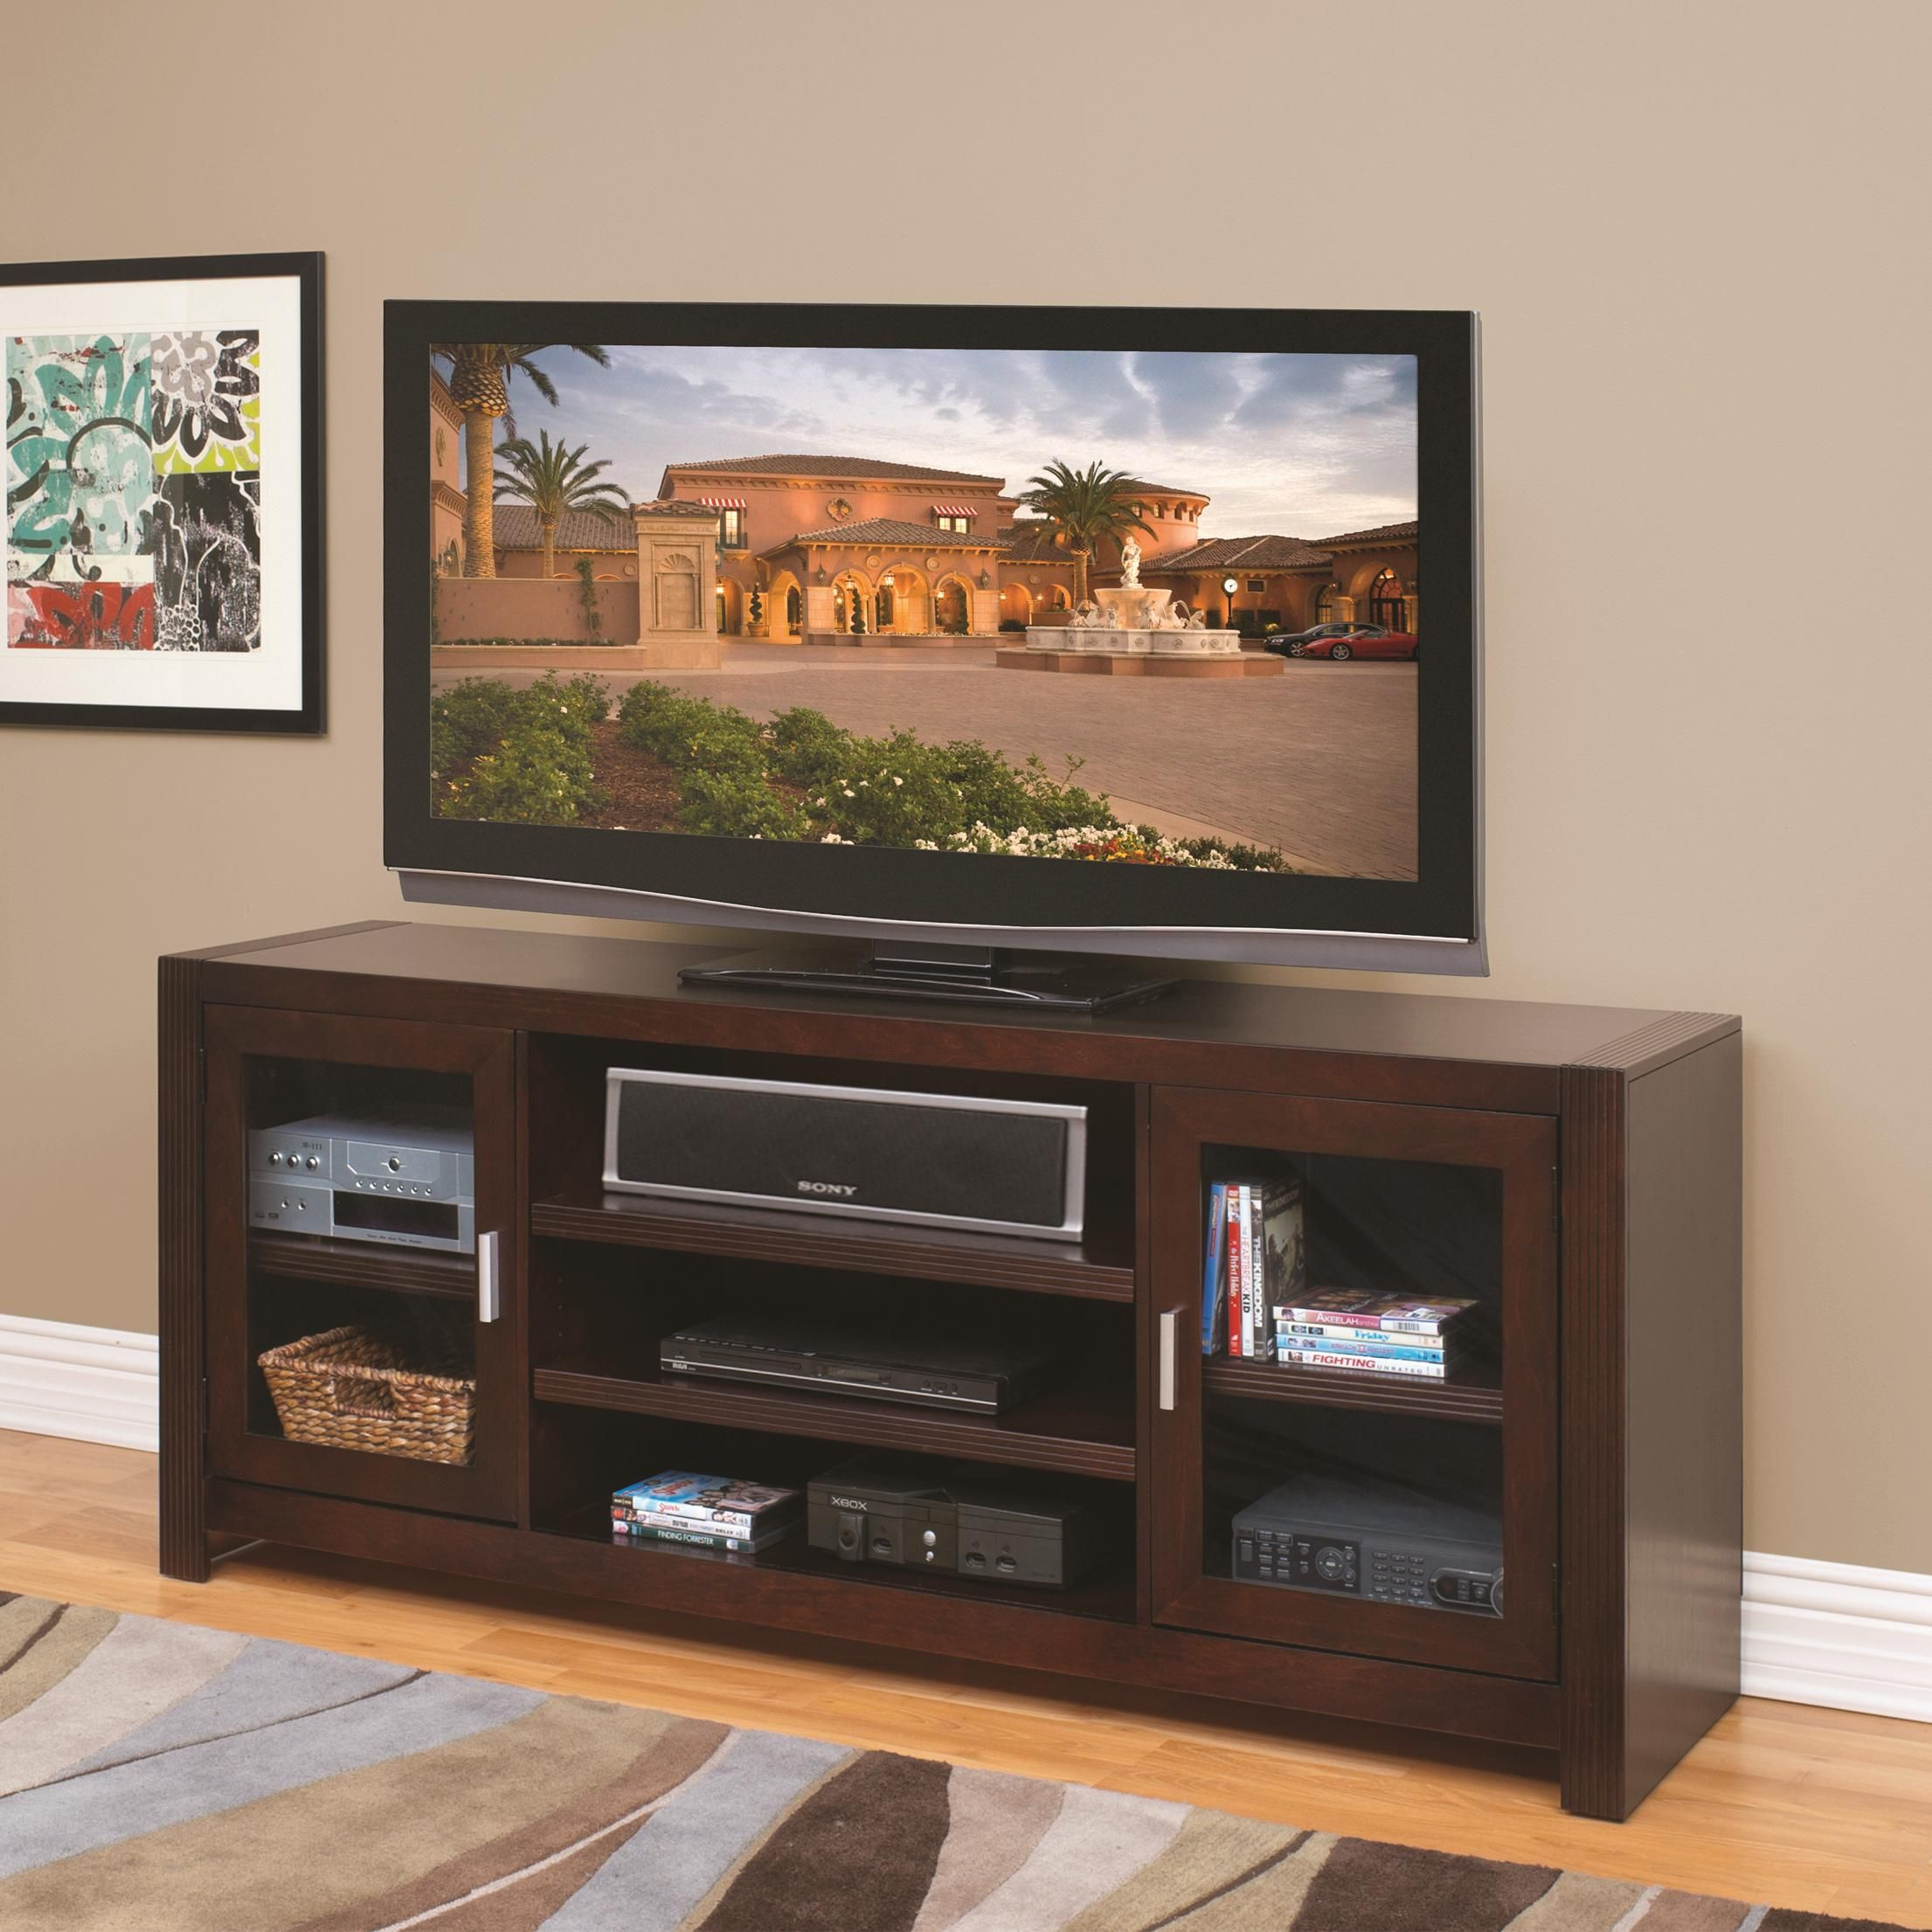 Carlton 72 Inch Wide Tv Console By Kathy Ireland Home By Martin